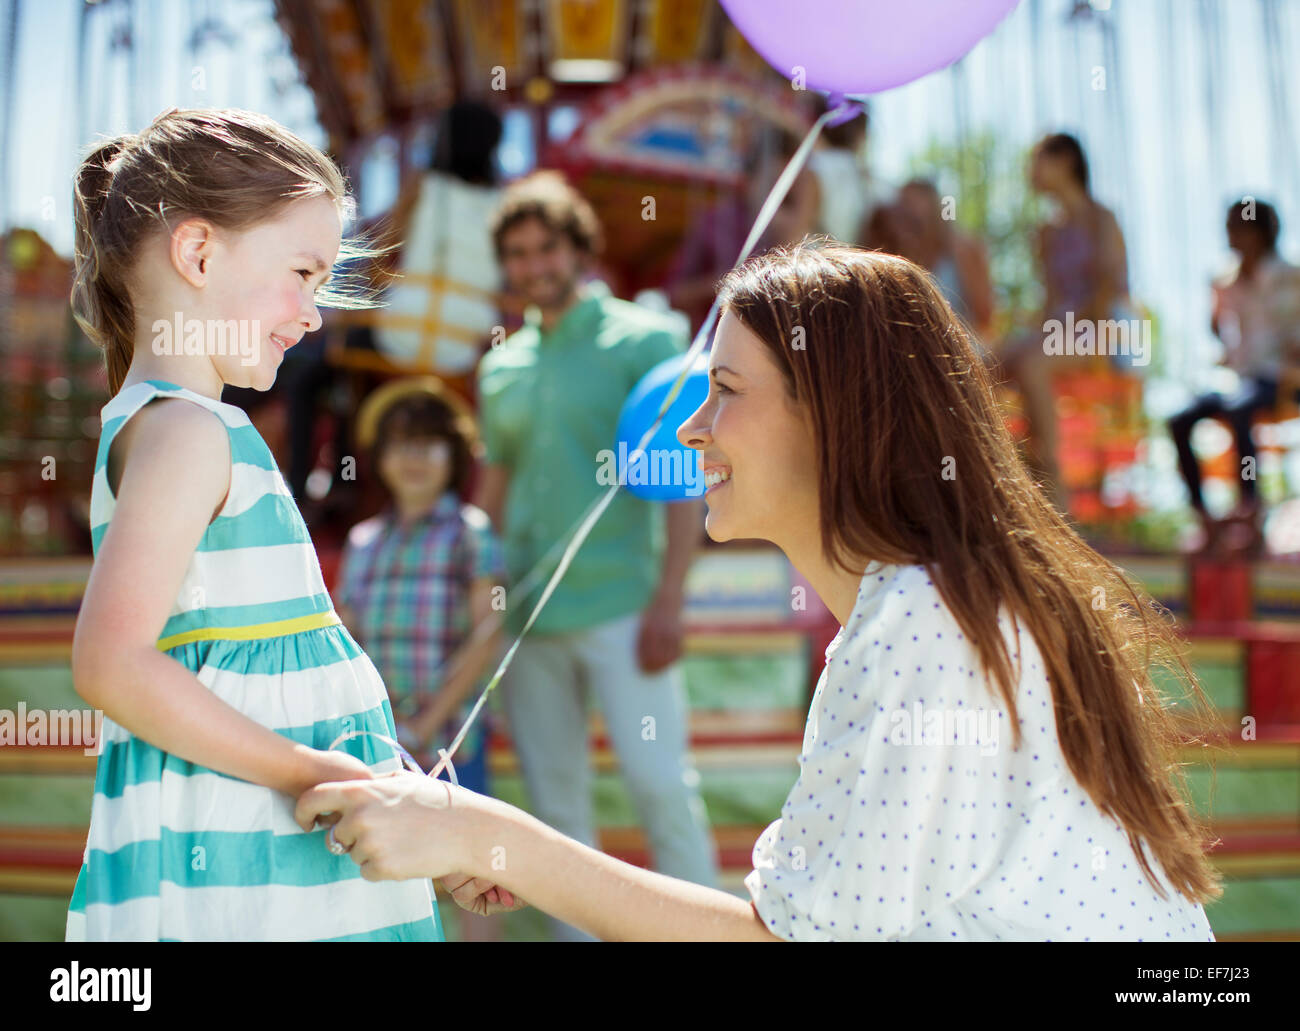 Mother and girl with balloon looking at each other in amusement park - Stock Image